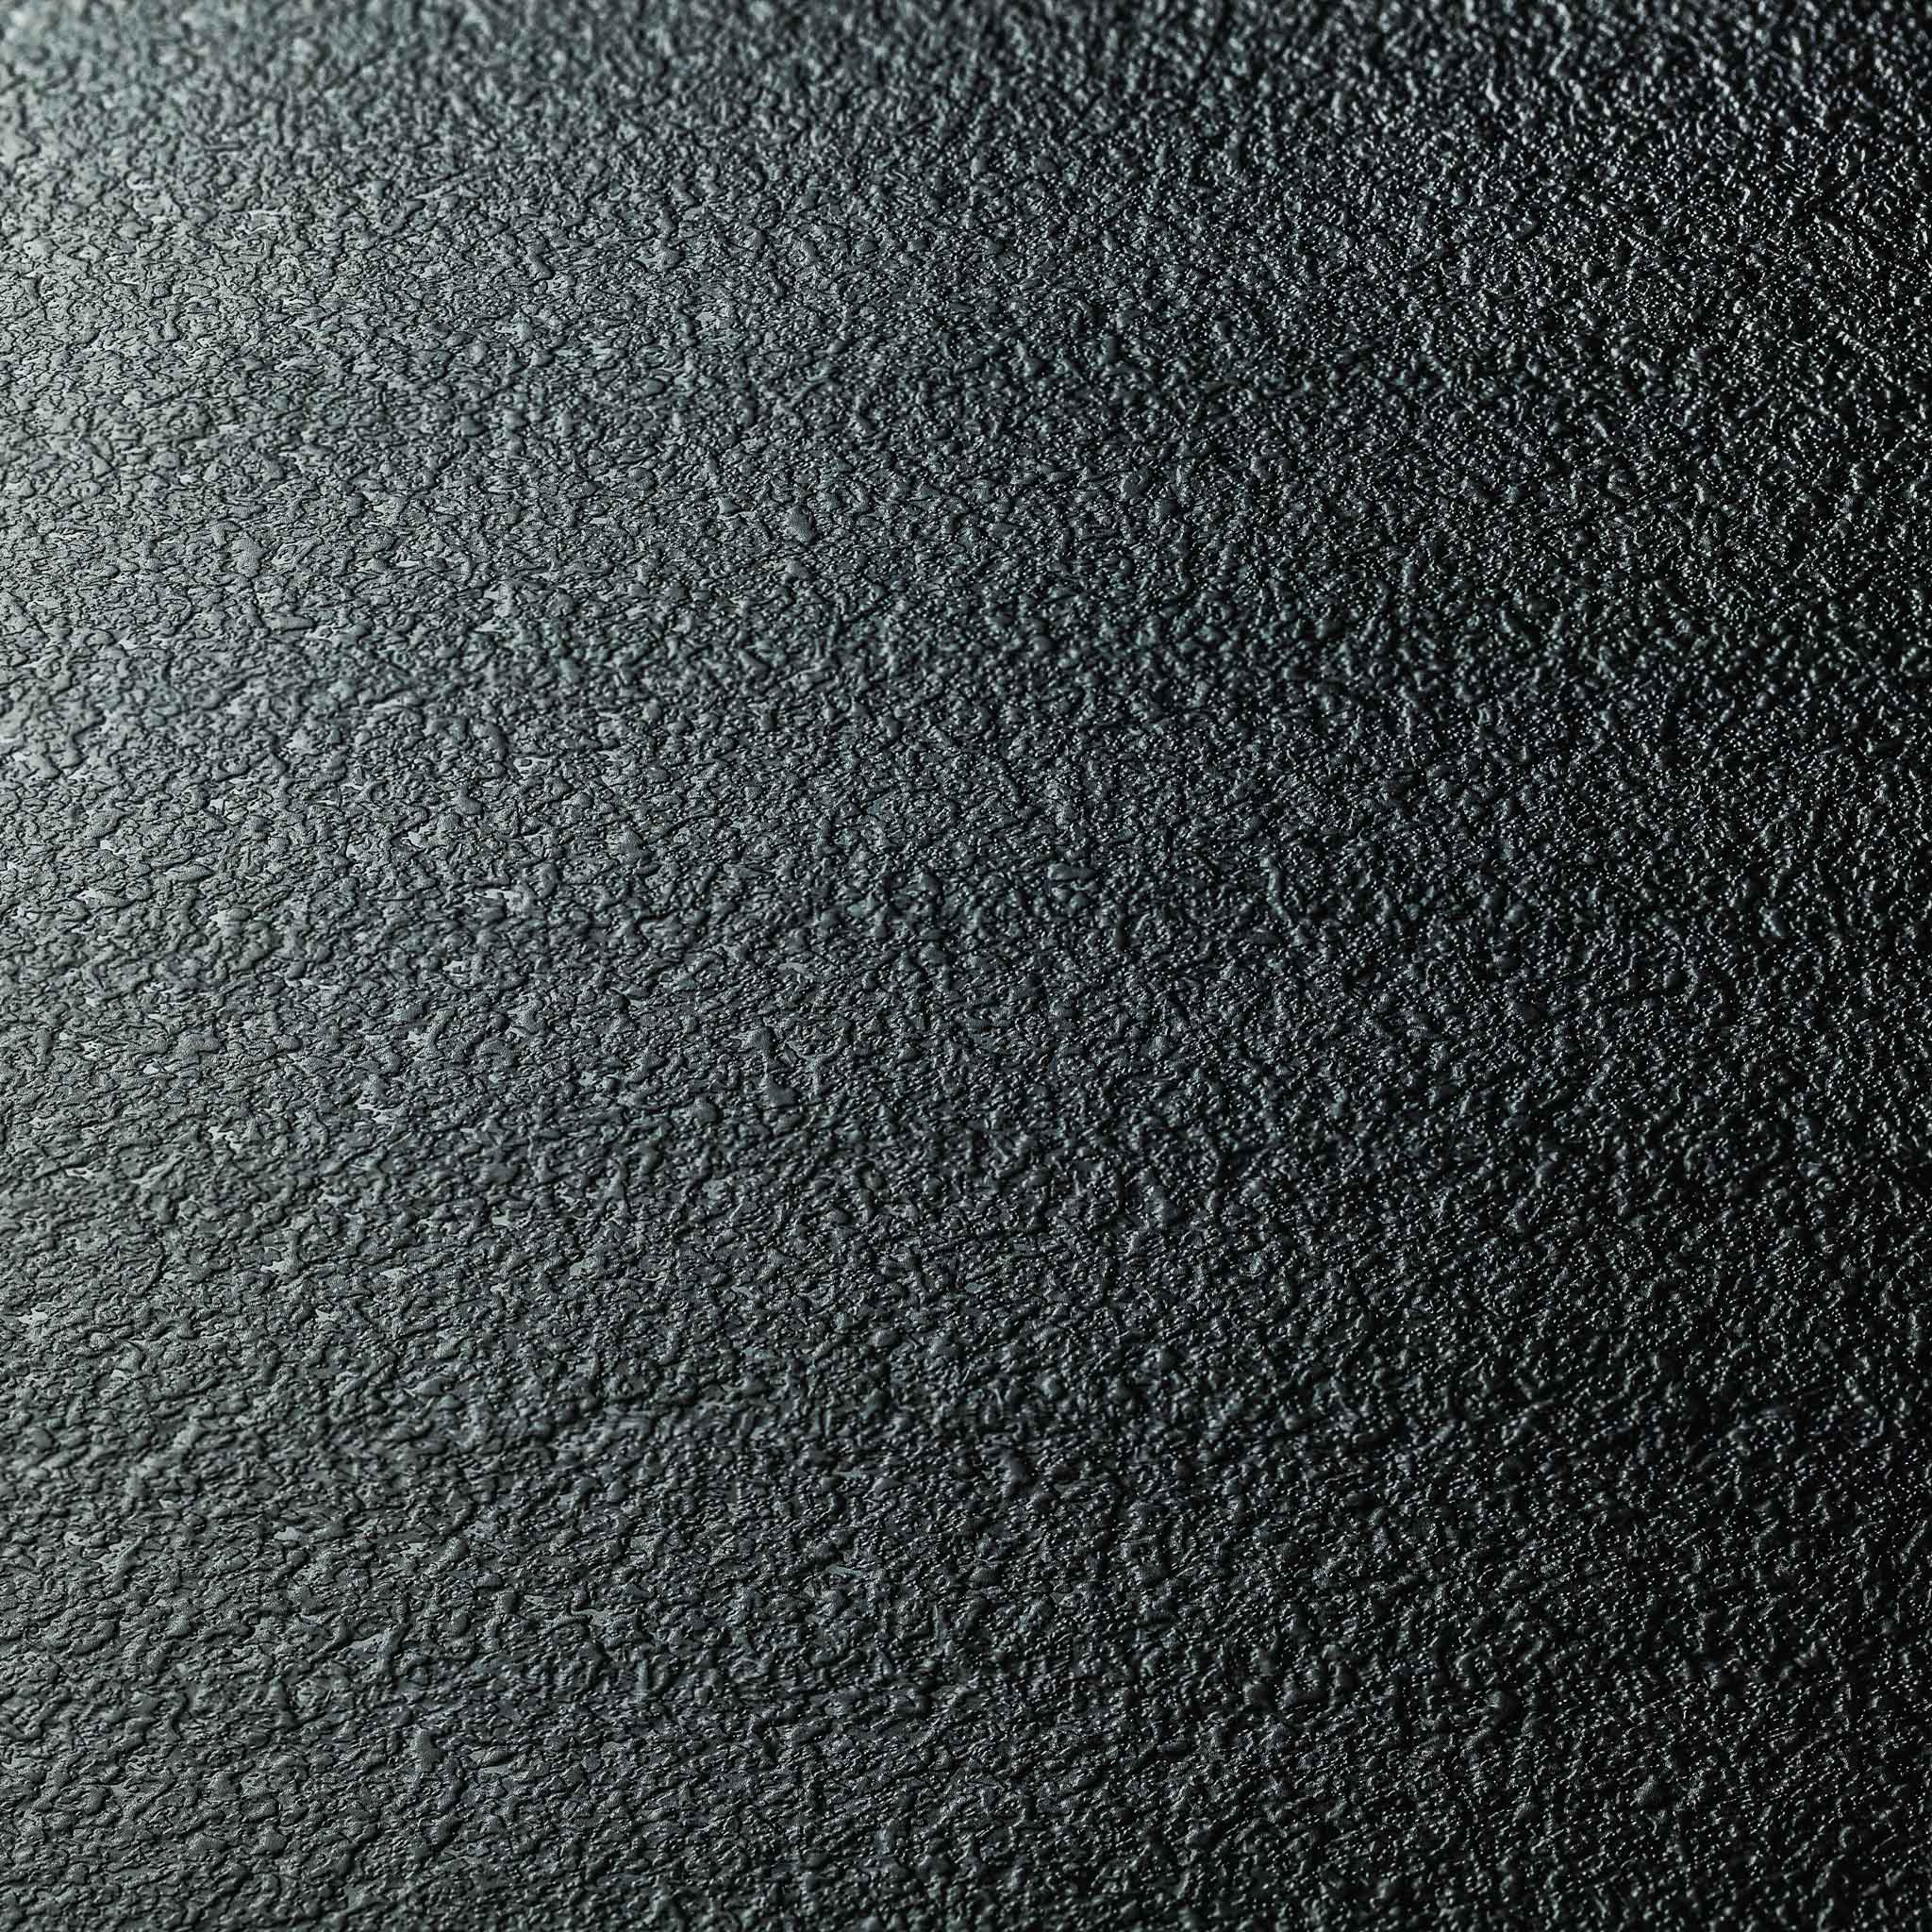 Egger Premium Black kitchen worktop sample.